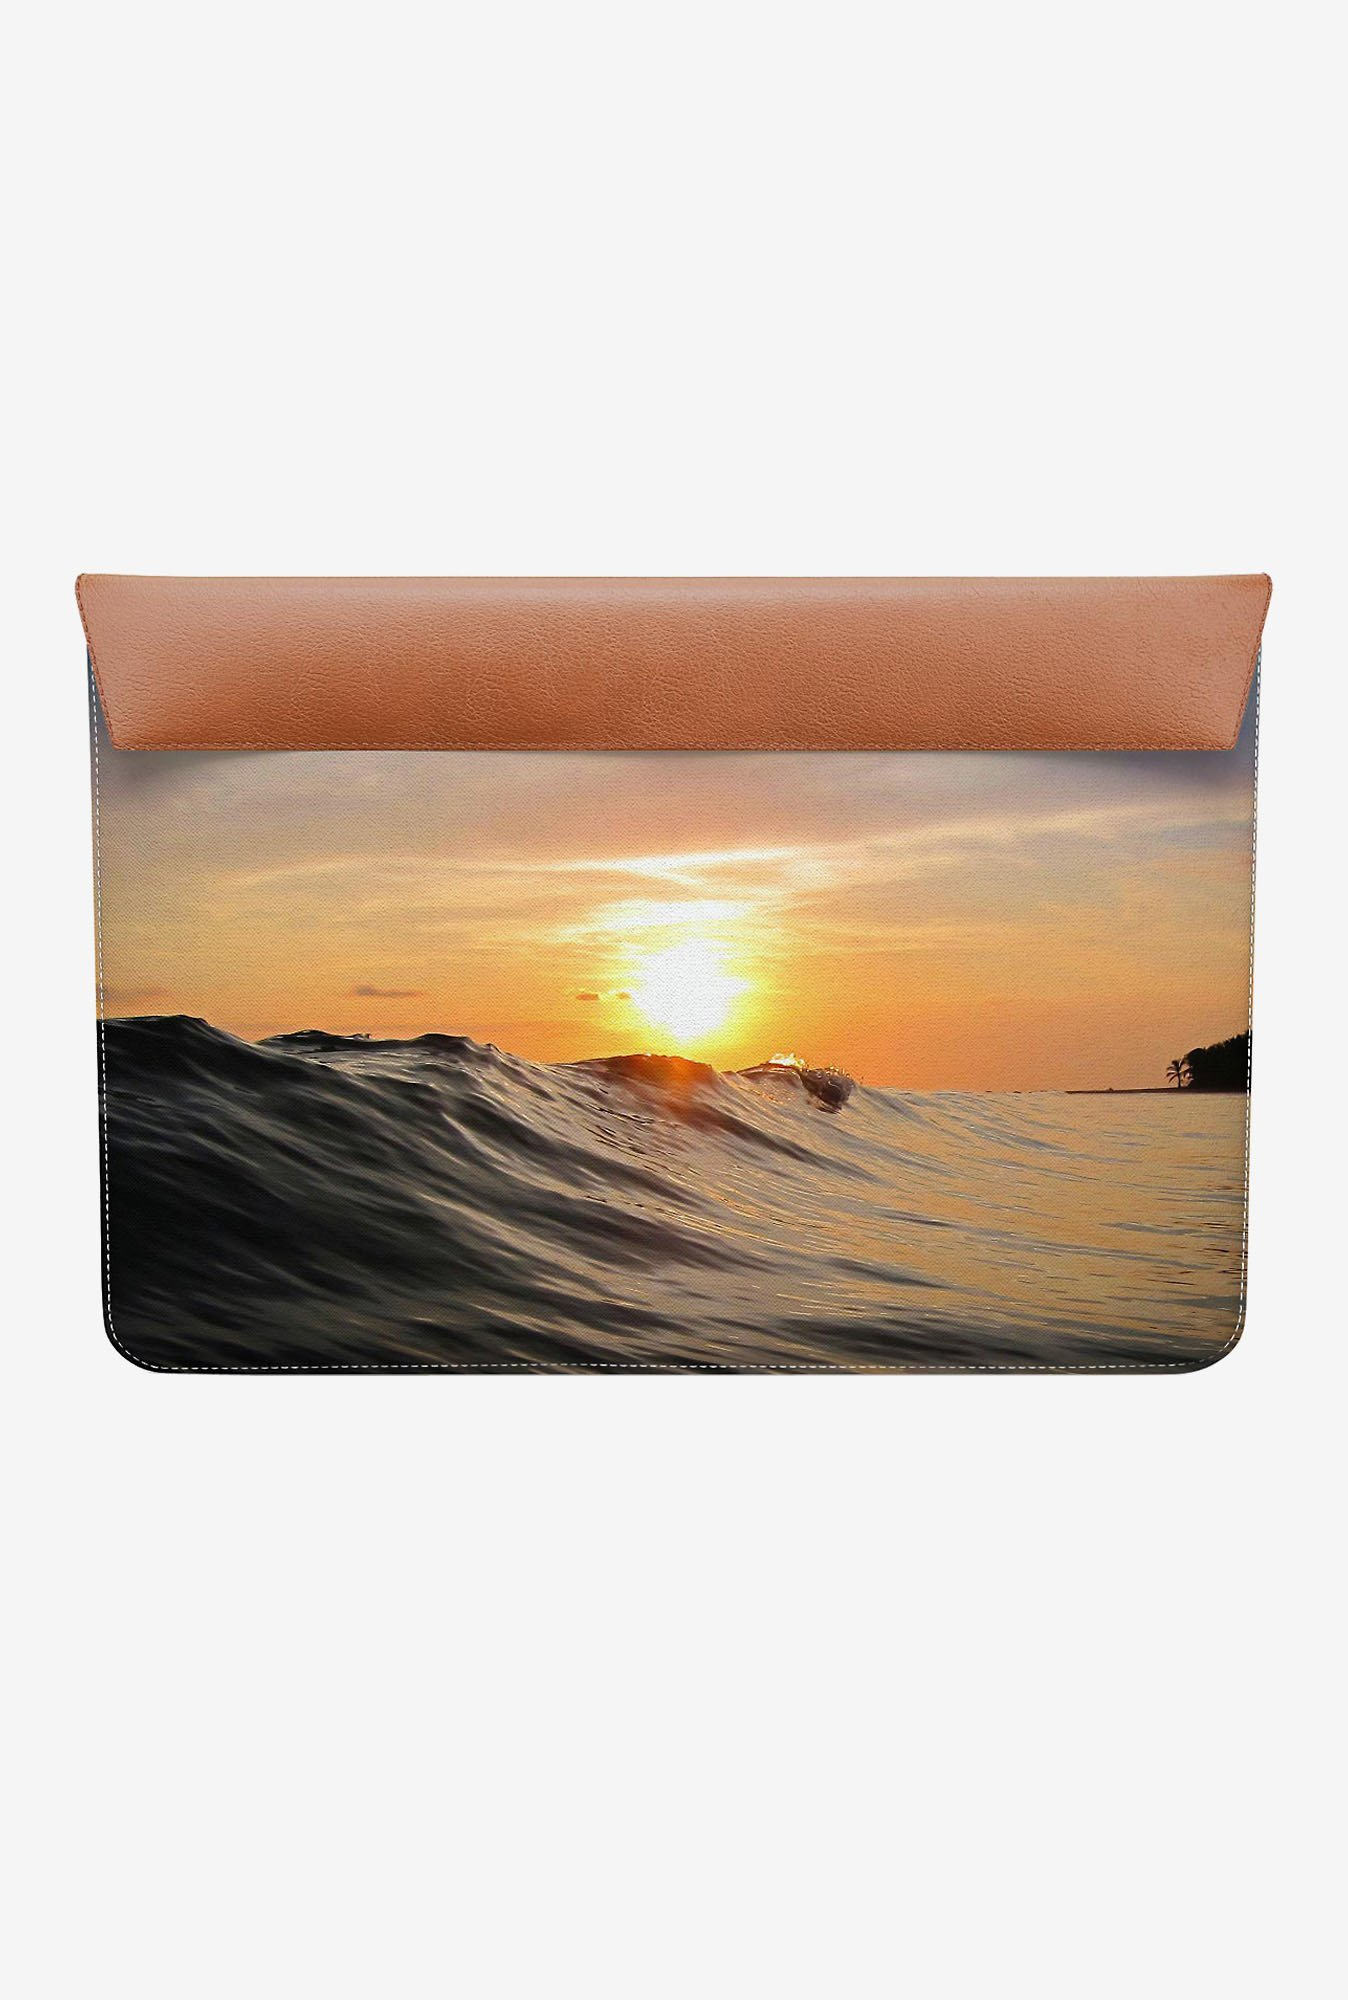 DailyObjects Sunset MacBook Air 11 Envelope Sleeve